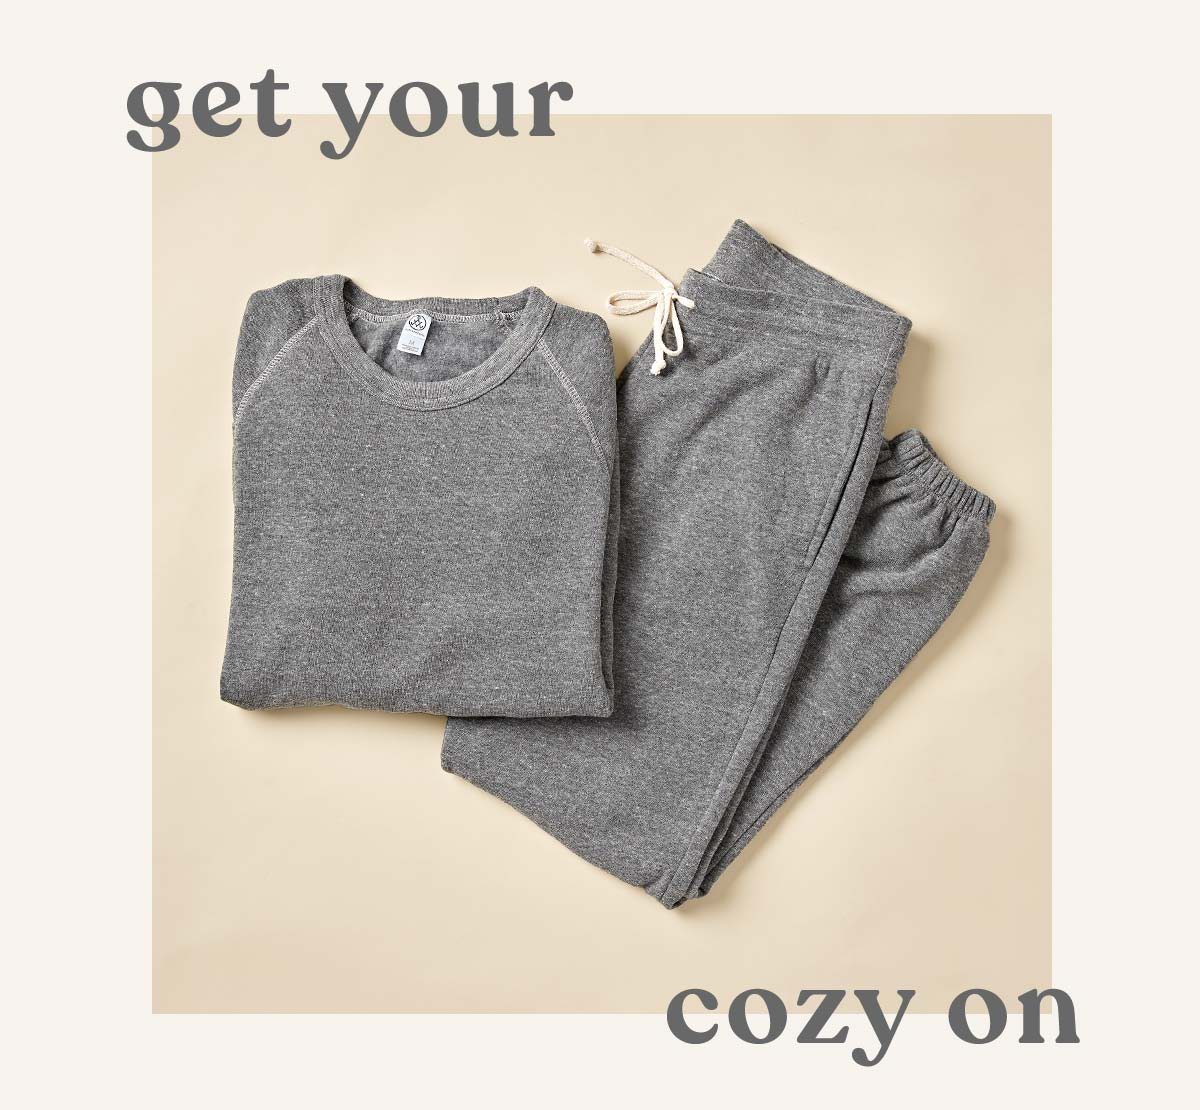 get your cozy on